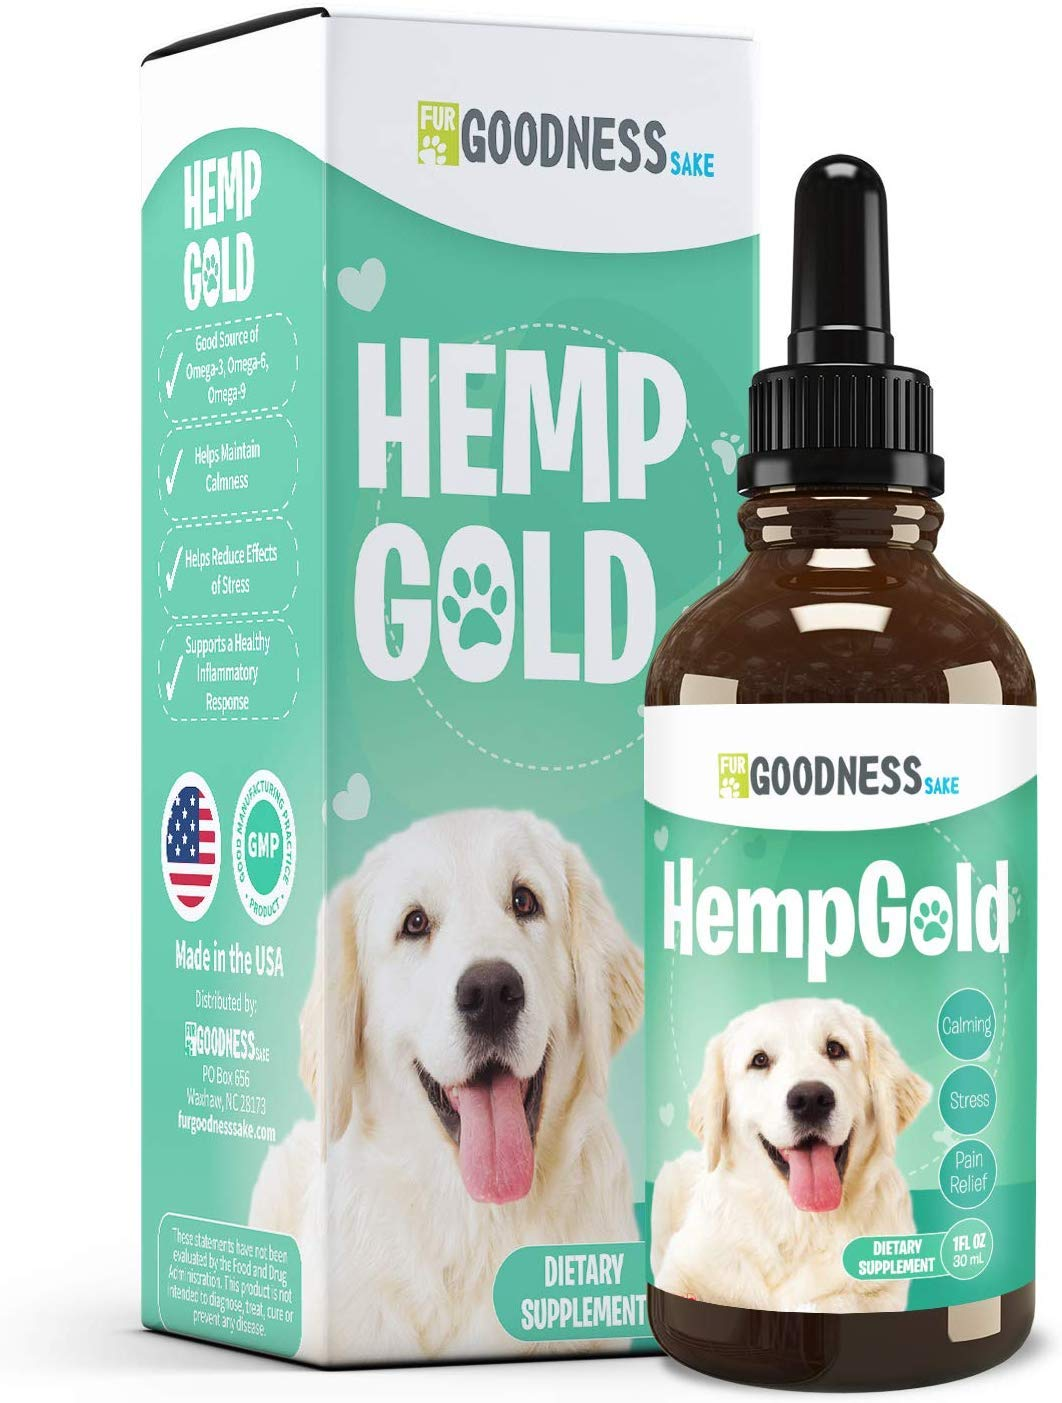 Fur Goodness Sake Hemp Oil for Dogs - Organic Remedy for Dog Anxiety Relief, Cat Calming and Joint Pain Relief - Grown in USA, Third Party Tested, Hemp Oil for Dogs & Cats by Fur Goodness Sake